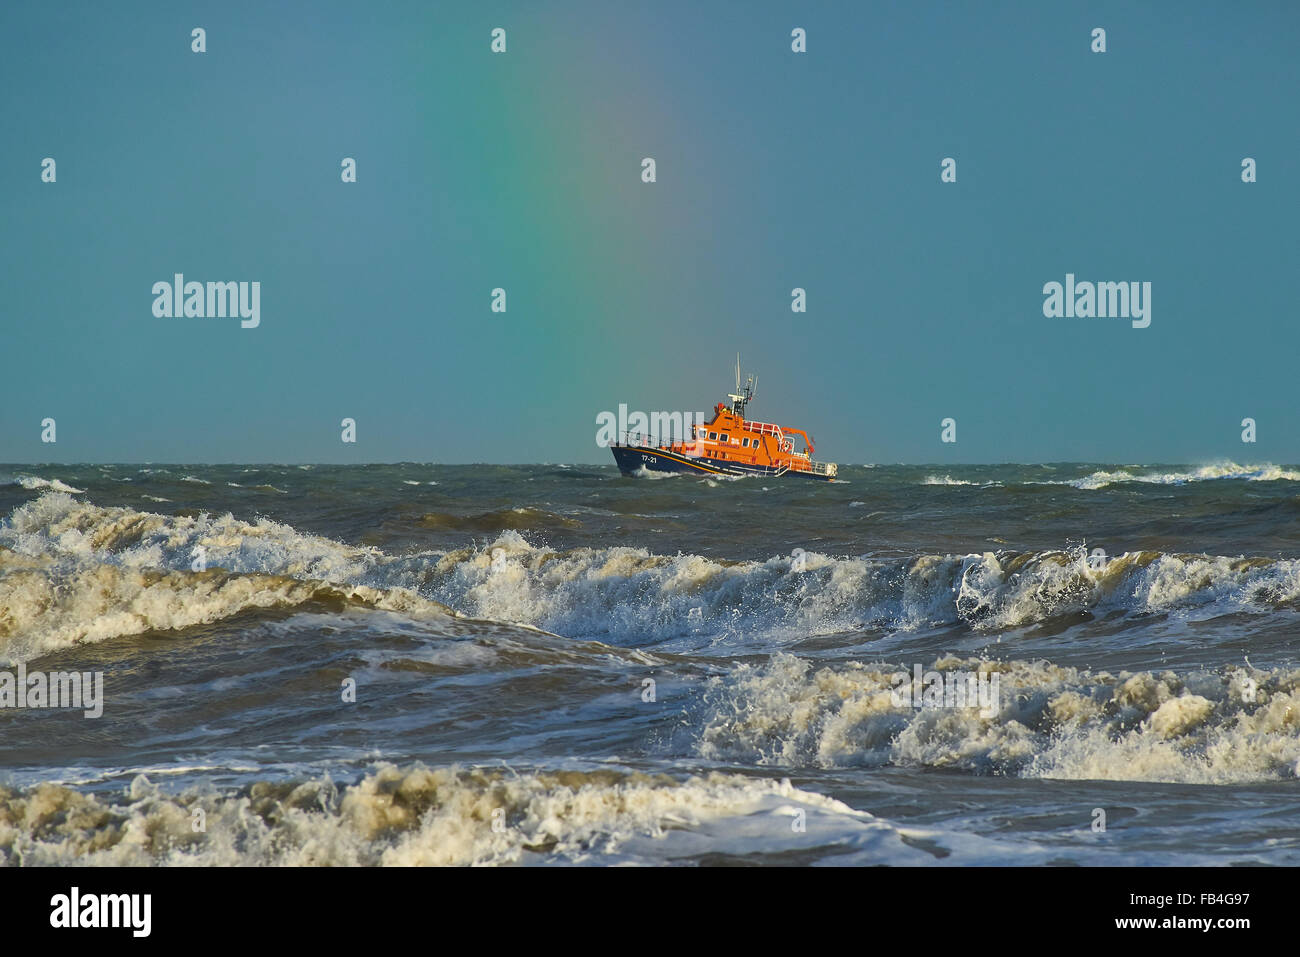 Lifeboat at Sea under a rainbow - Stock Image